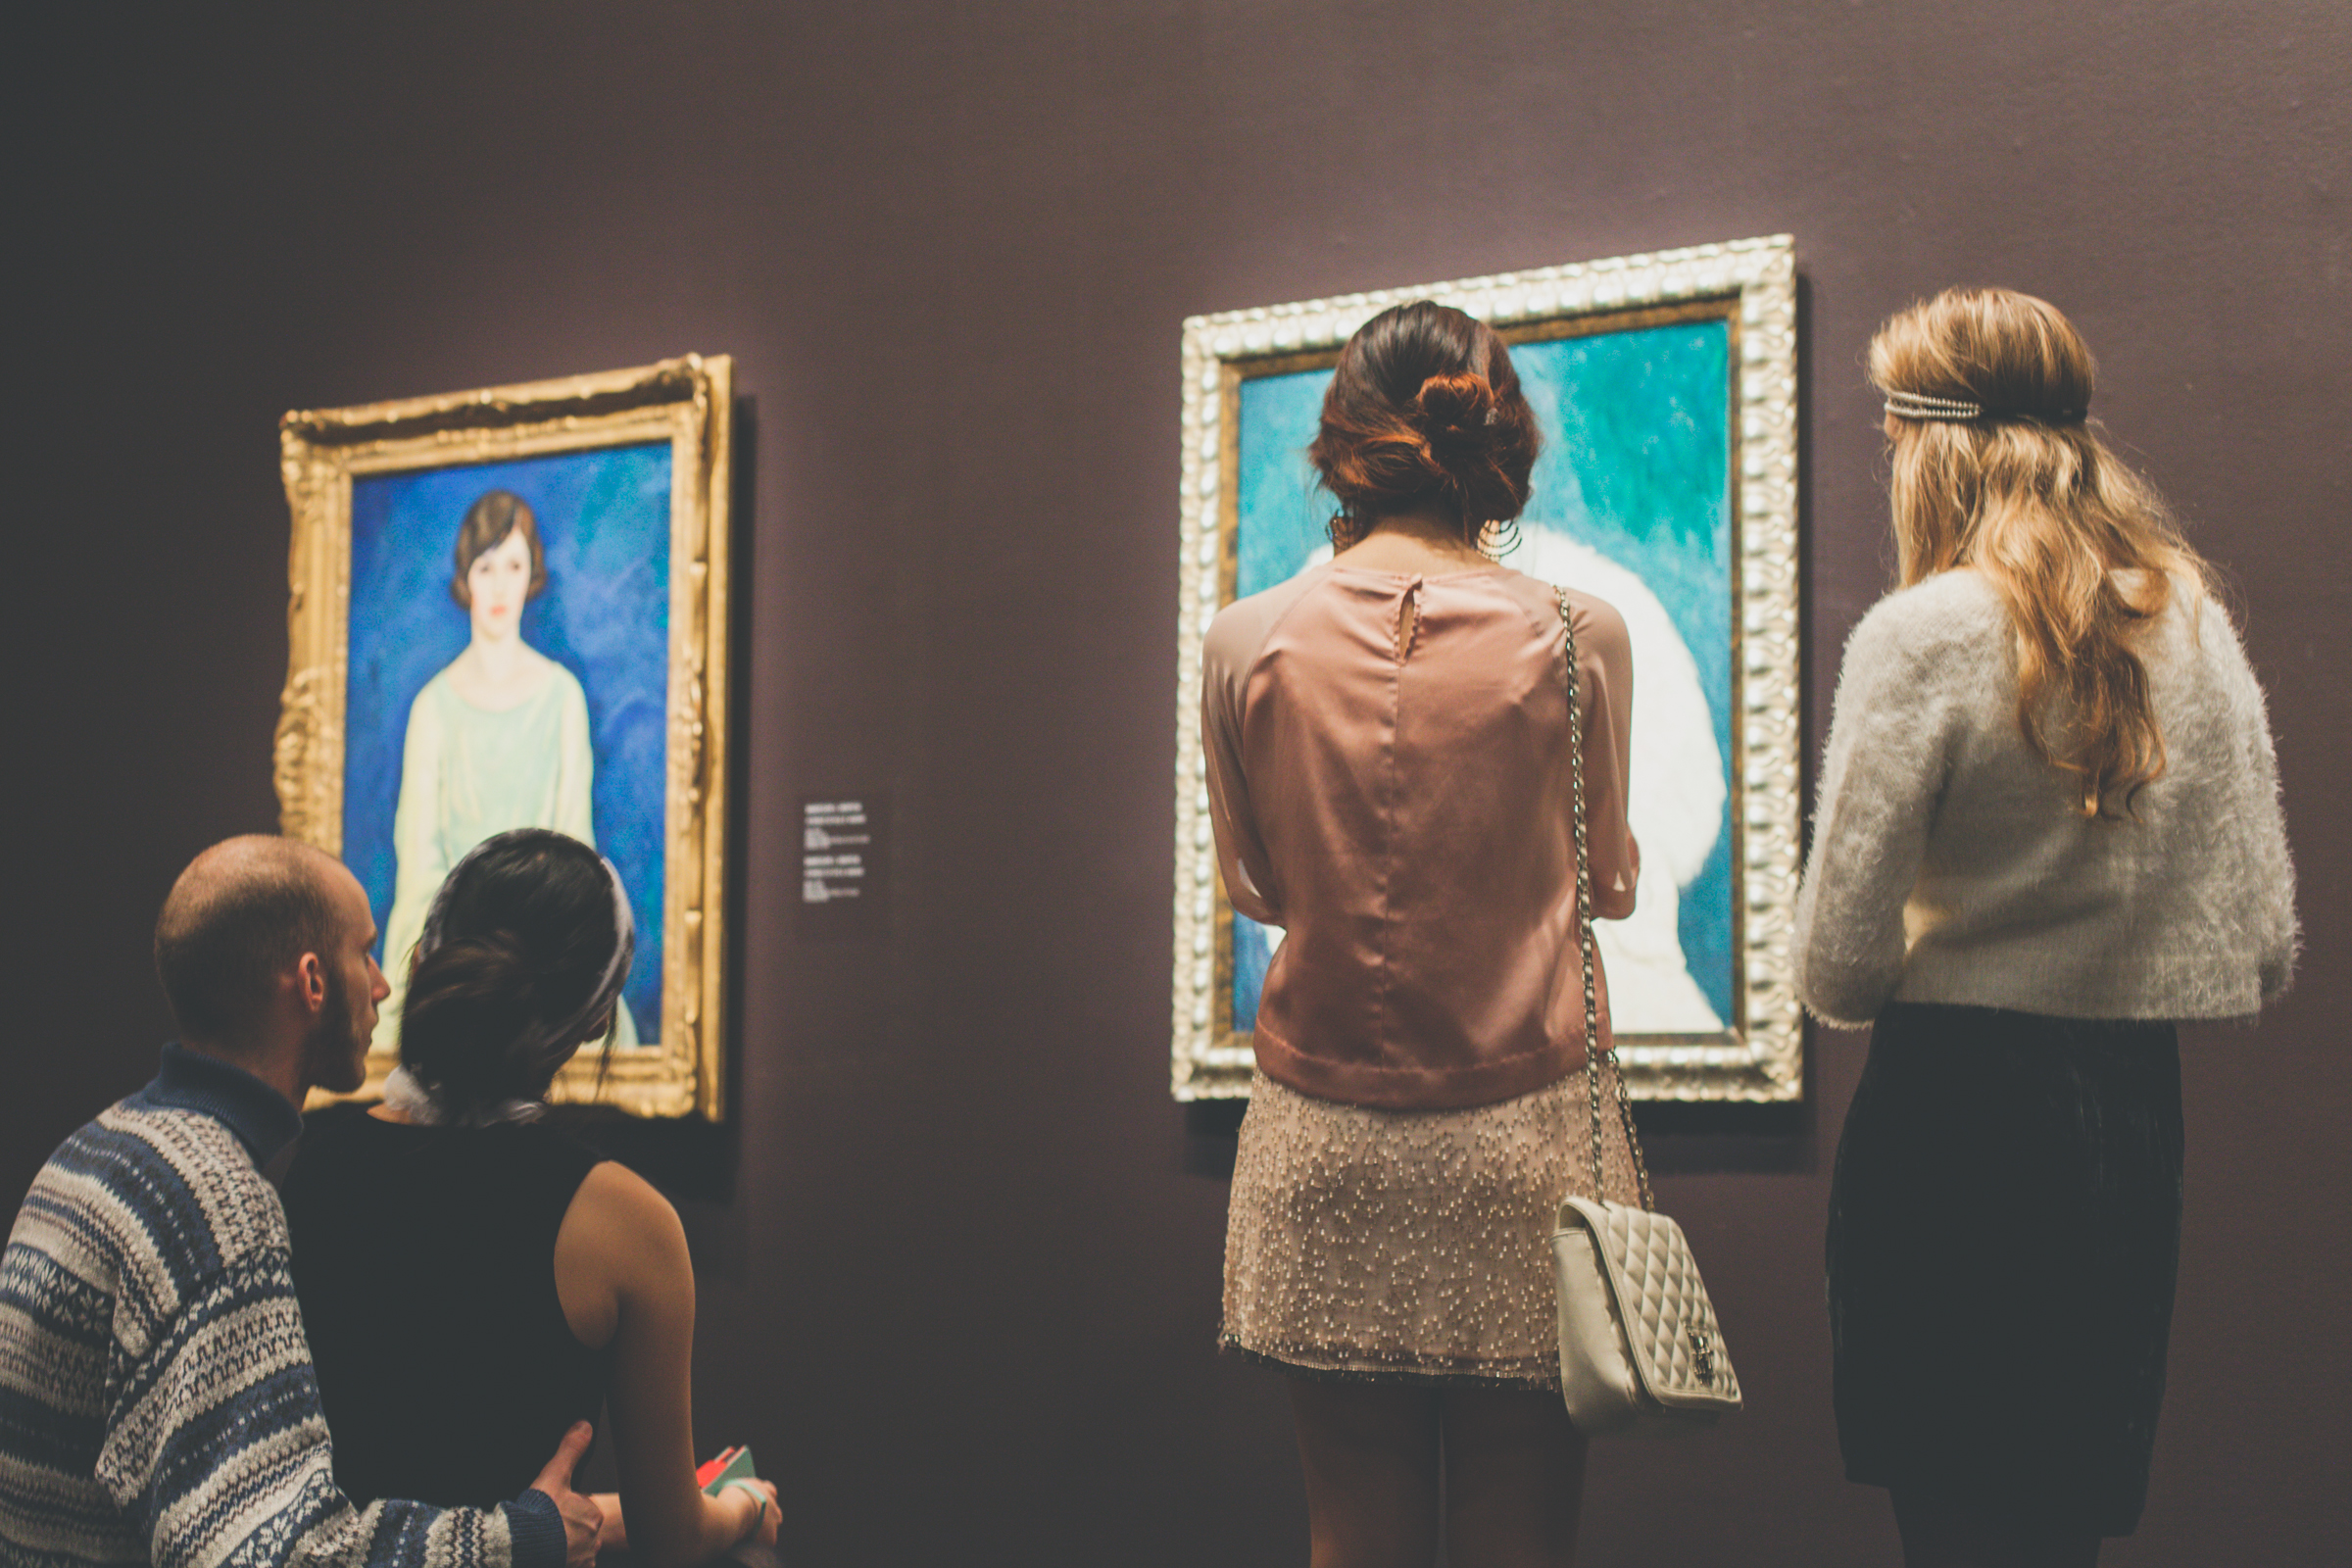 Visitors peruse the paintings that influenced Montreal's art scene over the last century. Photo by Marie-Pierre Savard.